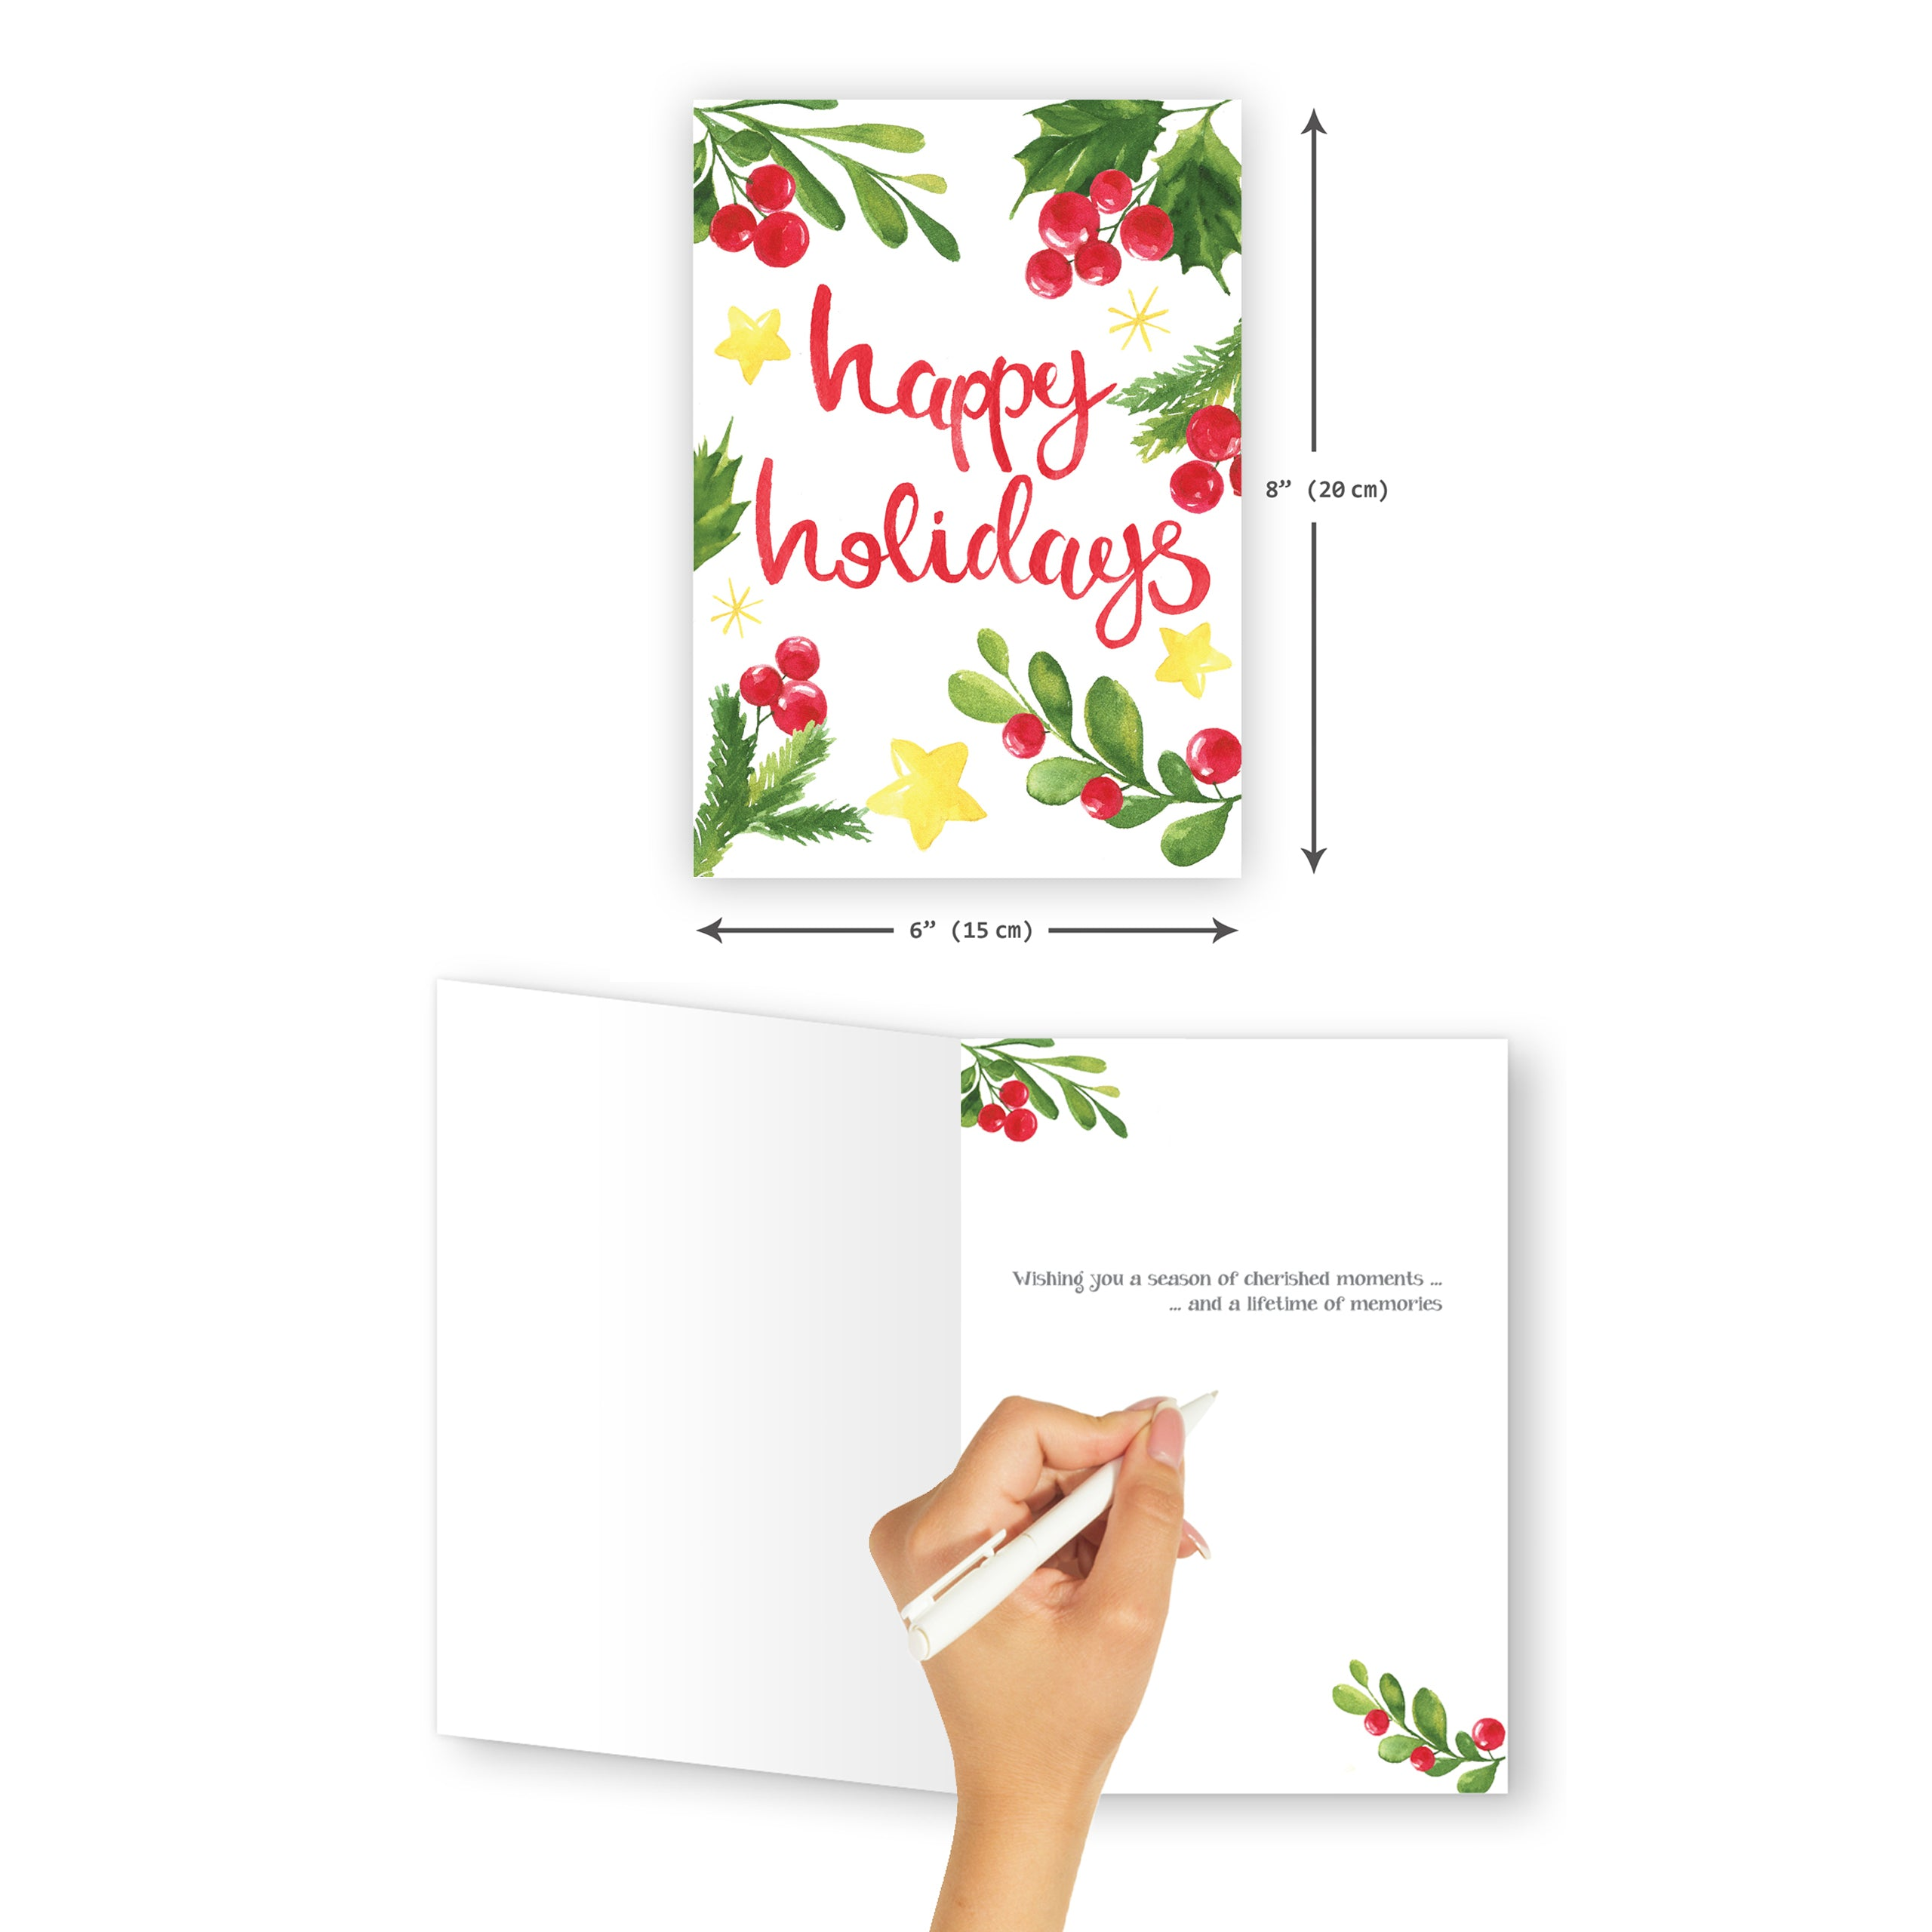 'Happy Holidays' Christmas Card - Northern Cards size and inside